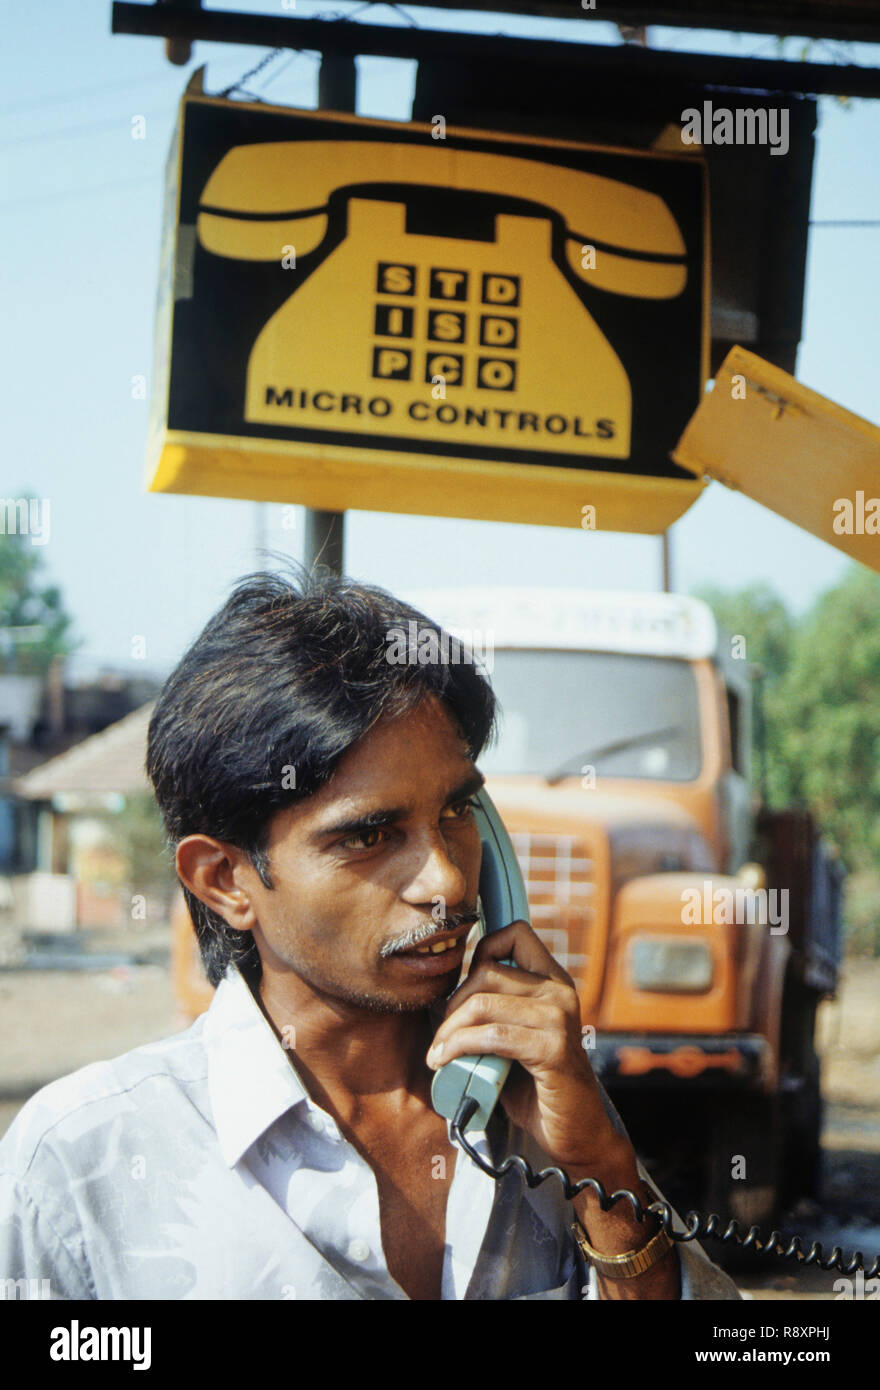 Indian phone booth - Stock Image